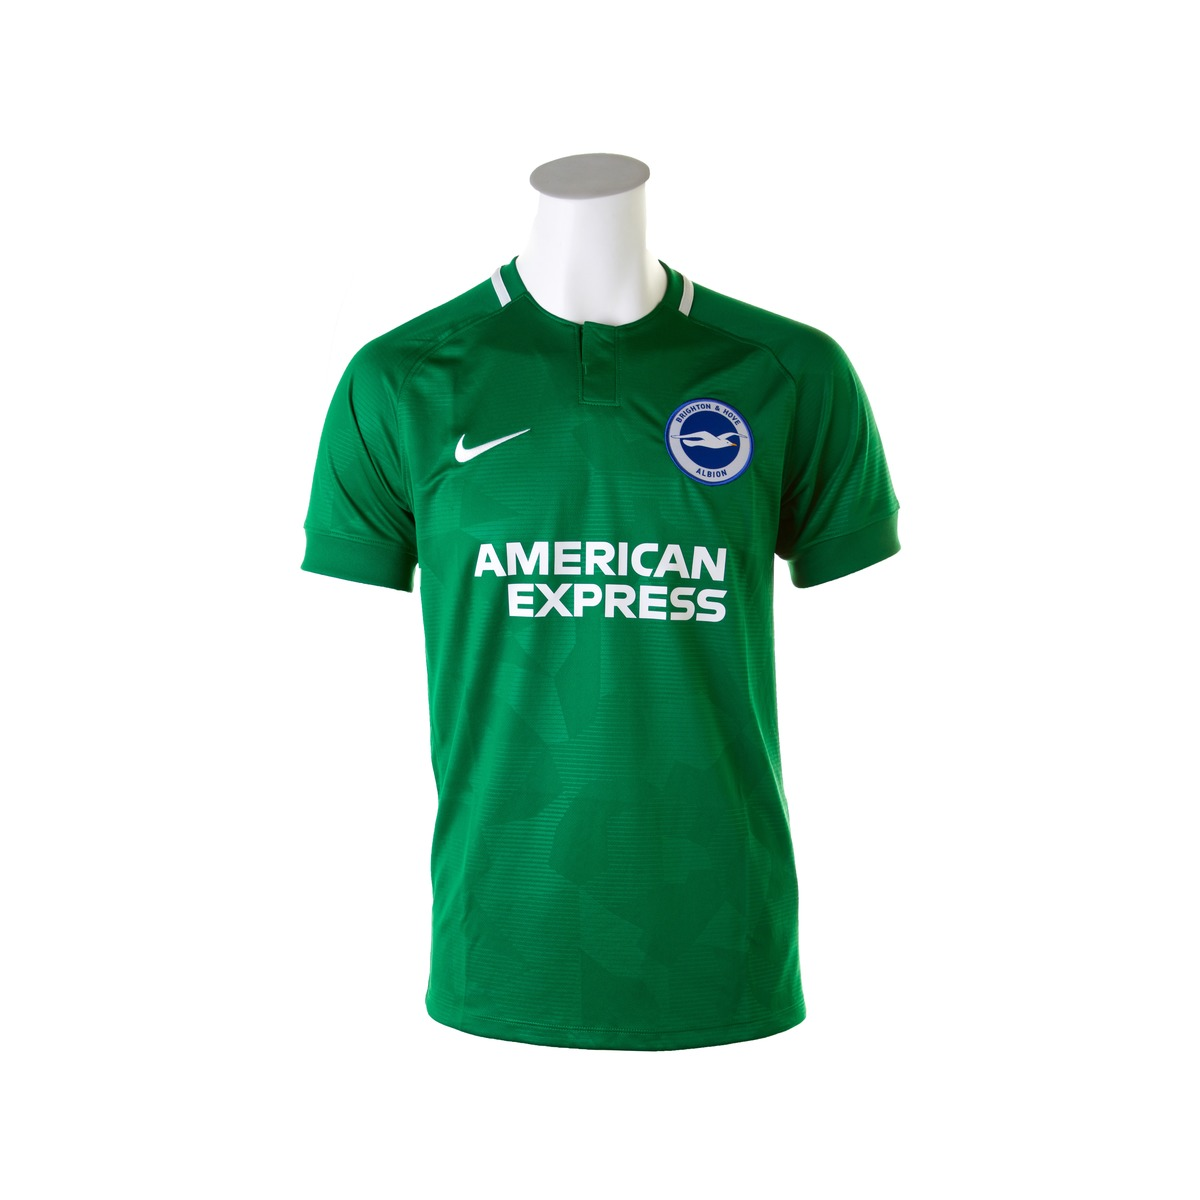 brighton_hove_albion_18_19_nike_away_kit_a